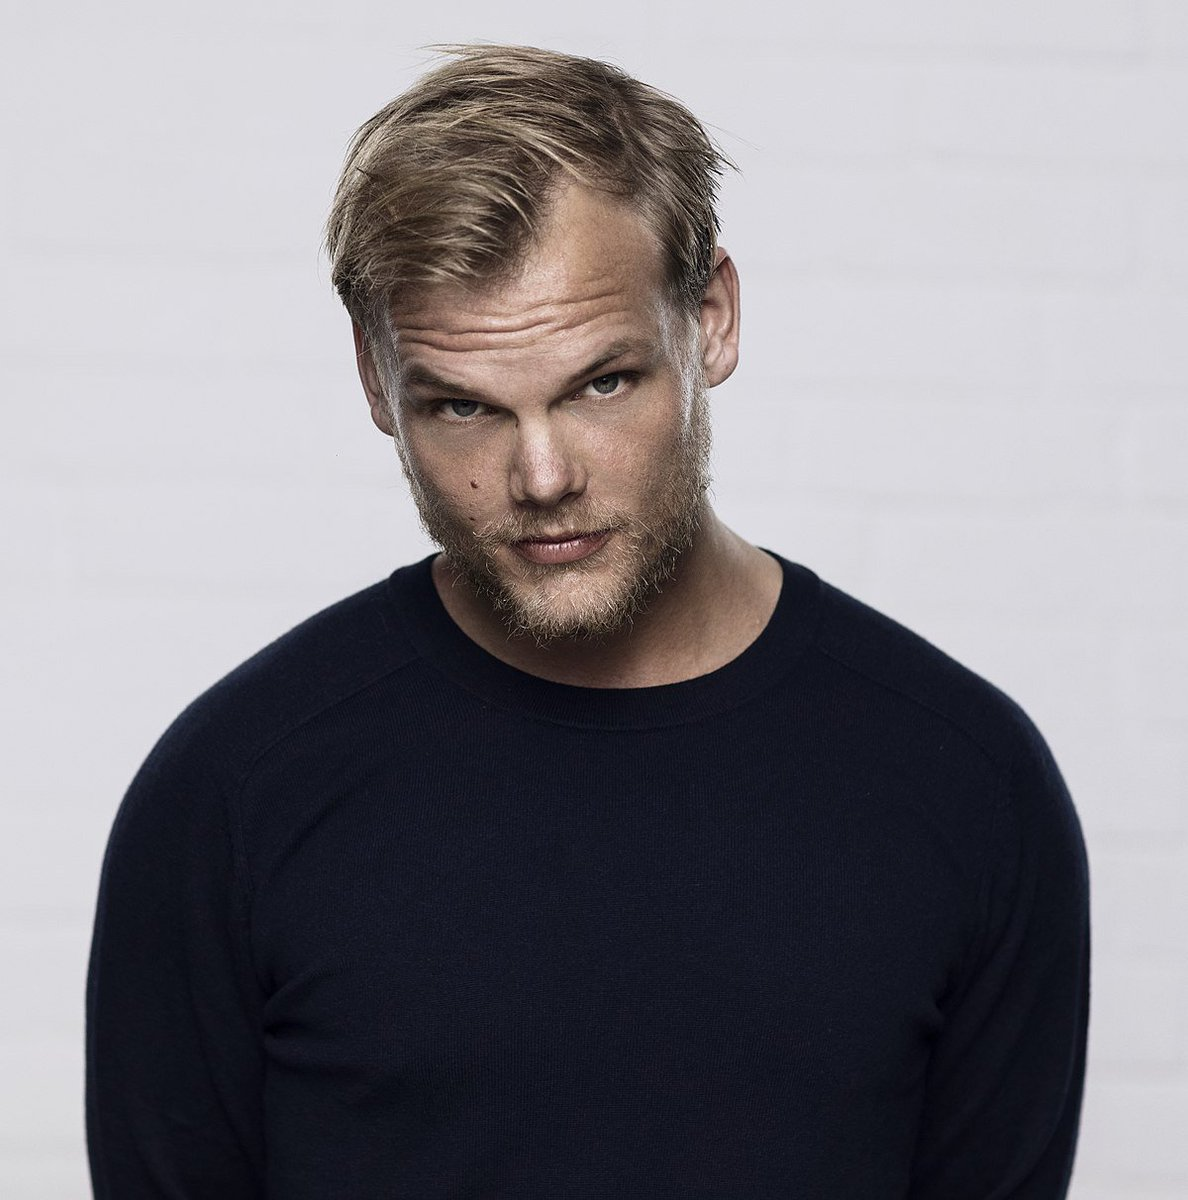 Our condolences to @Avicii&#39;s family, friends, and fans. The world lost a legend today ...  #EDM #_EDM_FAMILY_ #DJ #djlife #picoftheday #GoodVibes  #goodtimes  #Twitter #Instagram #Producer #music #edmfamily #Avicii #PrayForAvicii #Legend #Swedish #Sweden #BreakingNews #sad<br>http://pic.twitter.com/uhMQAAsiKJ